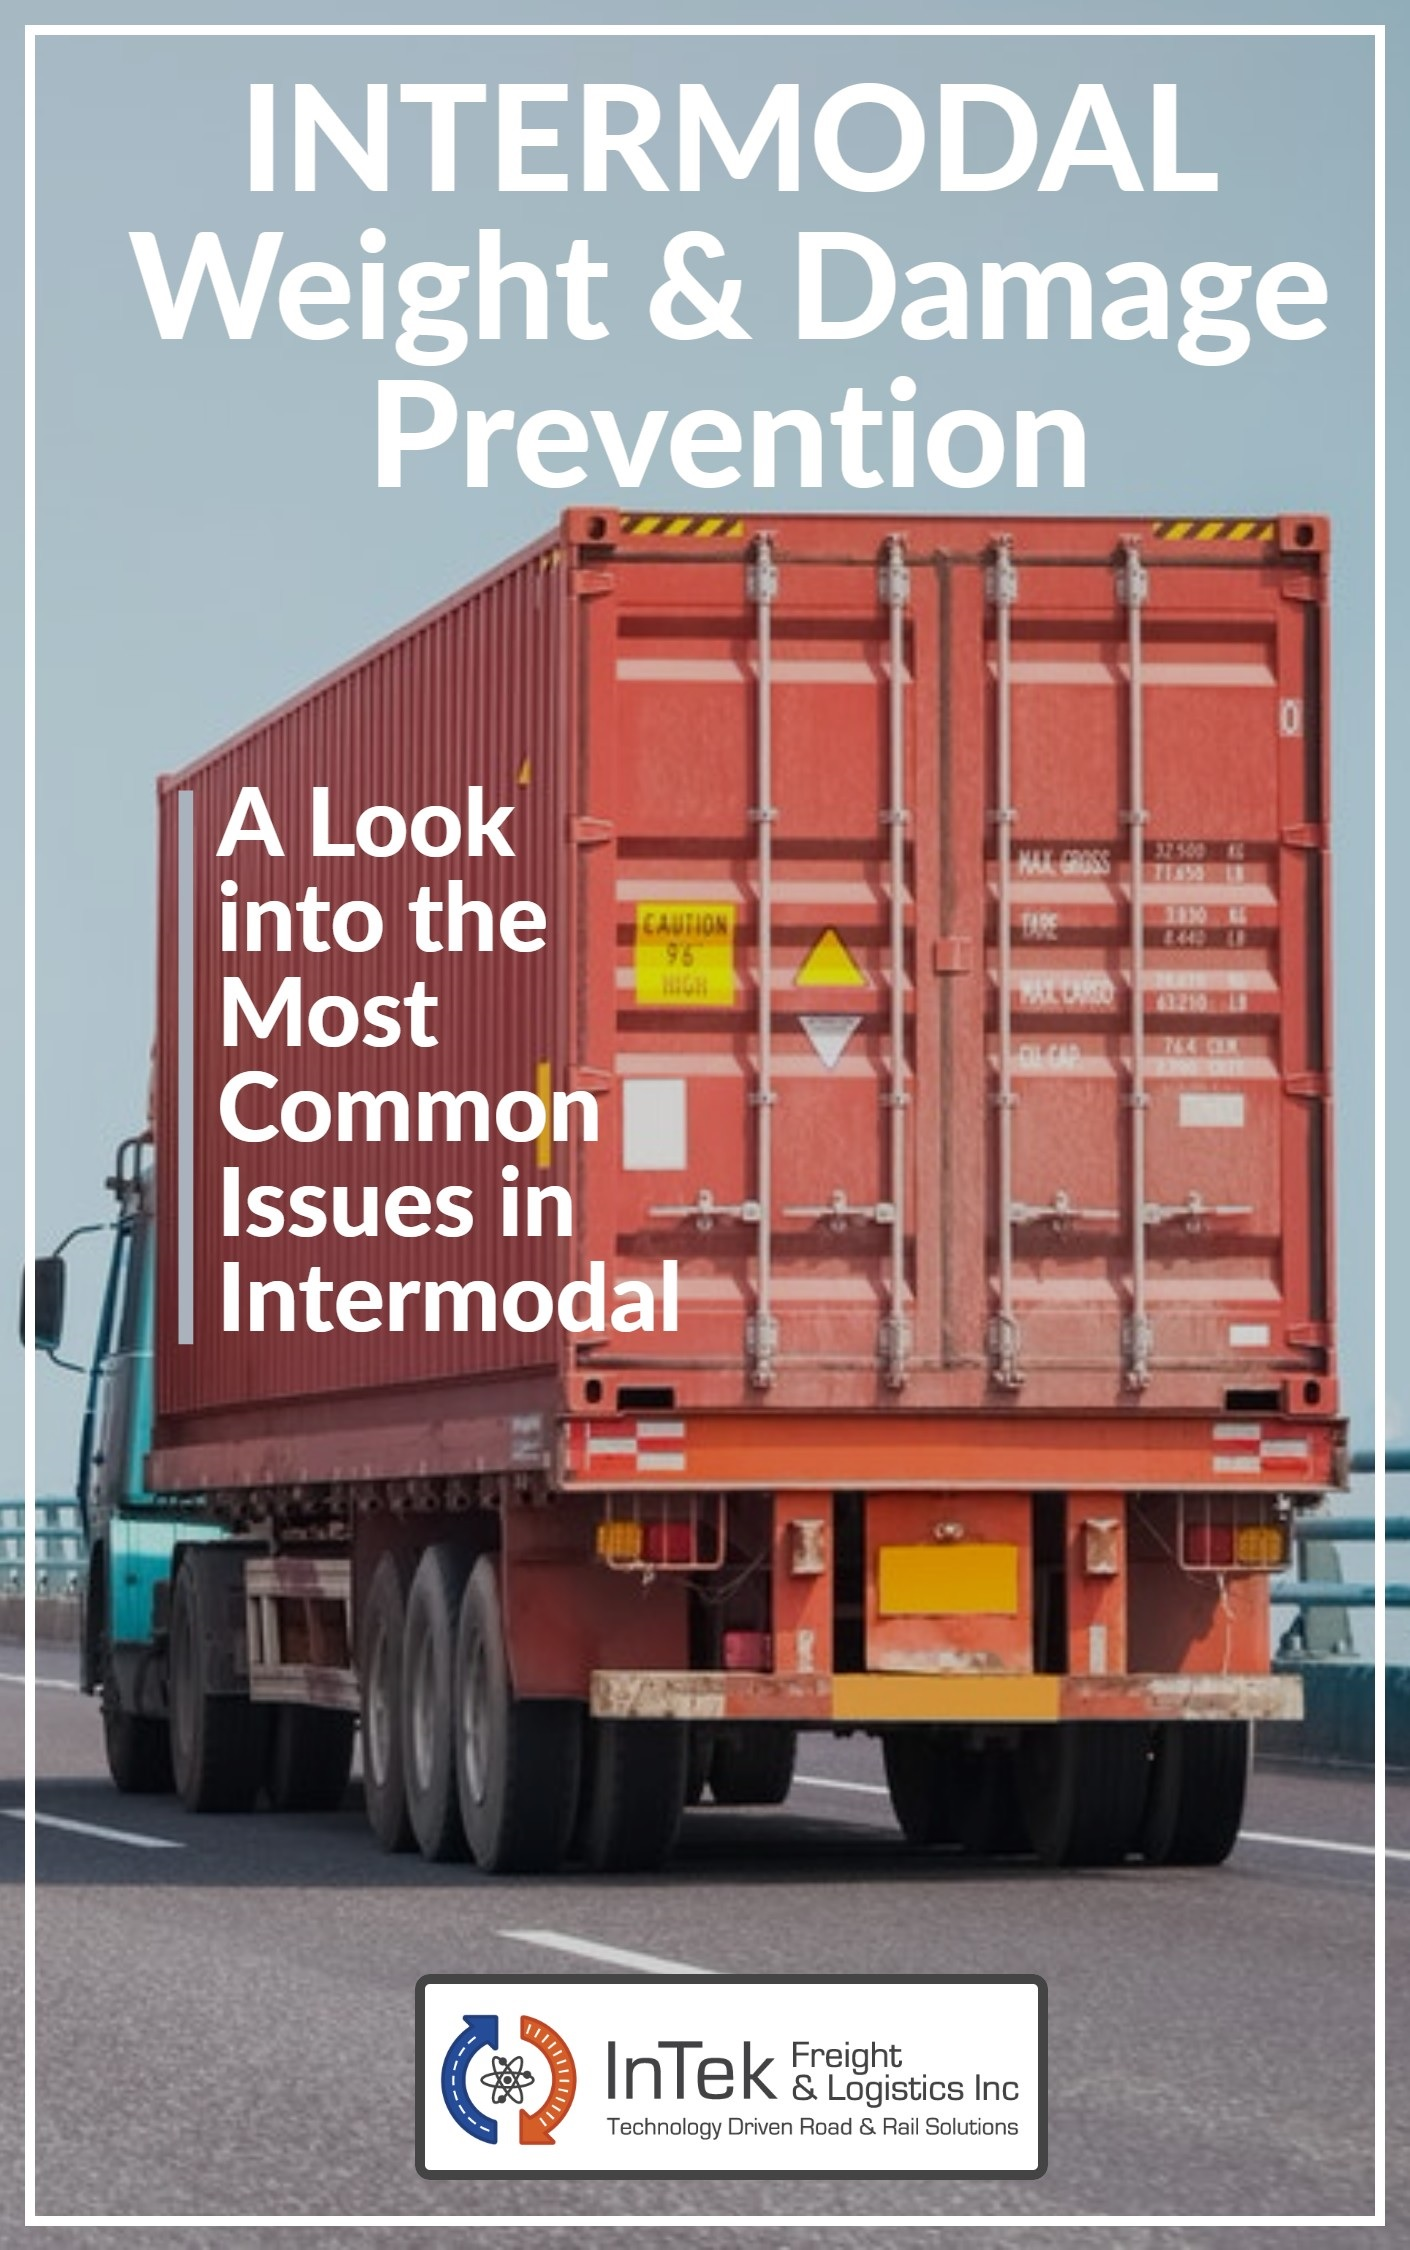 intermodal weight and damage prevention